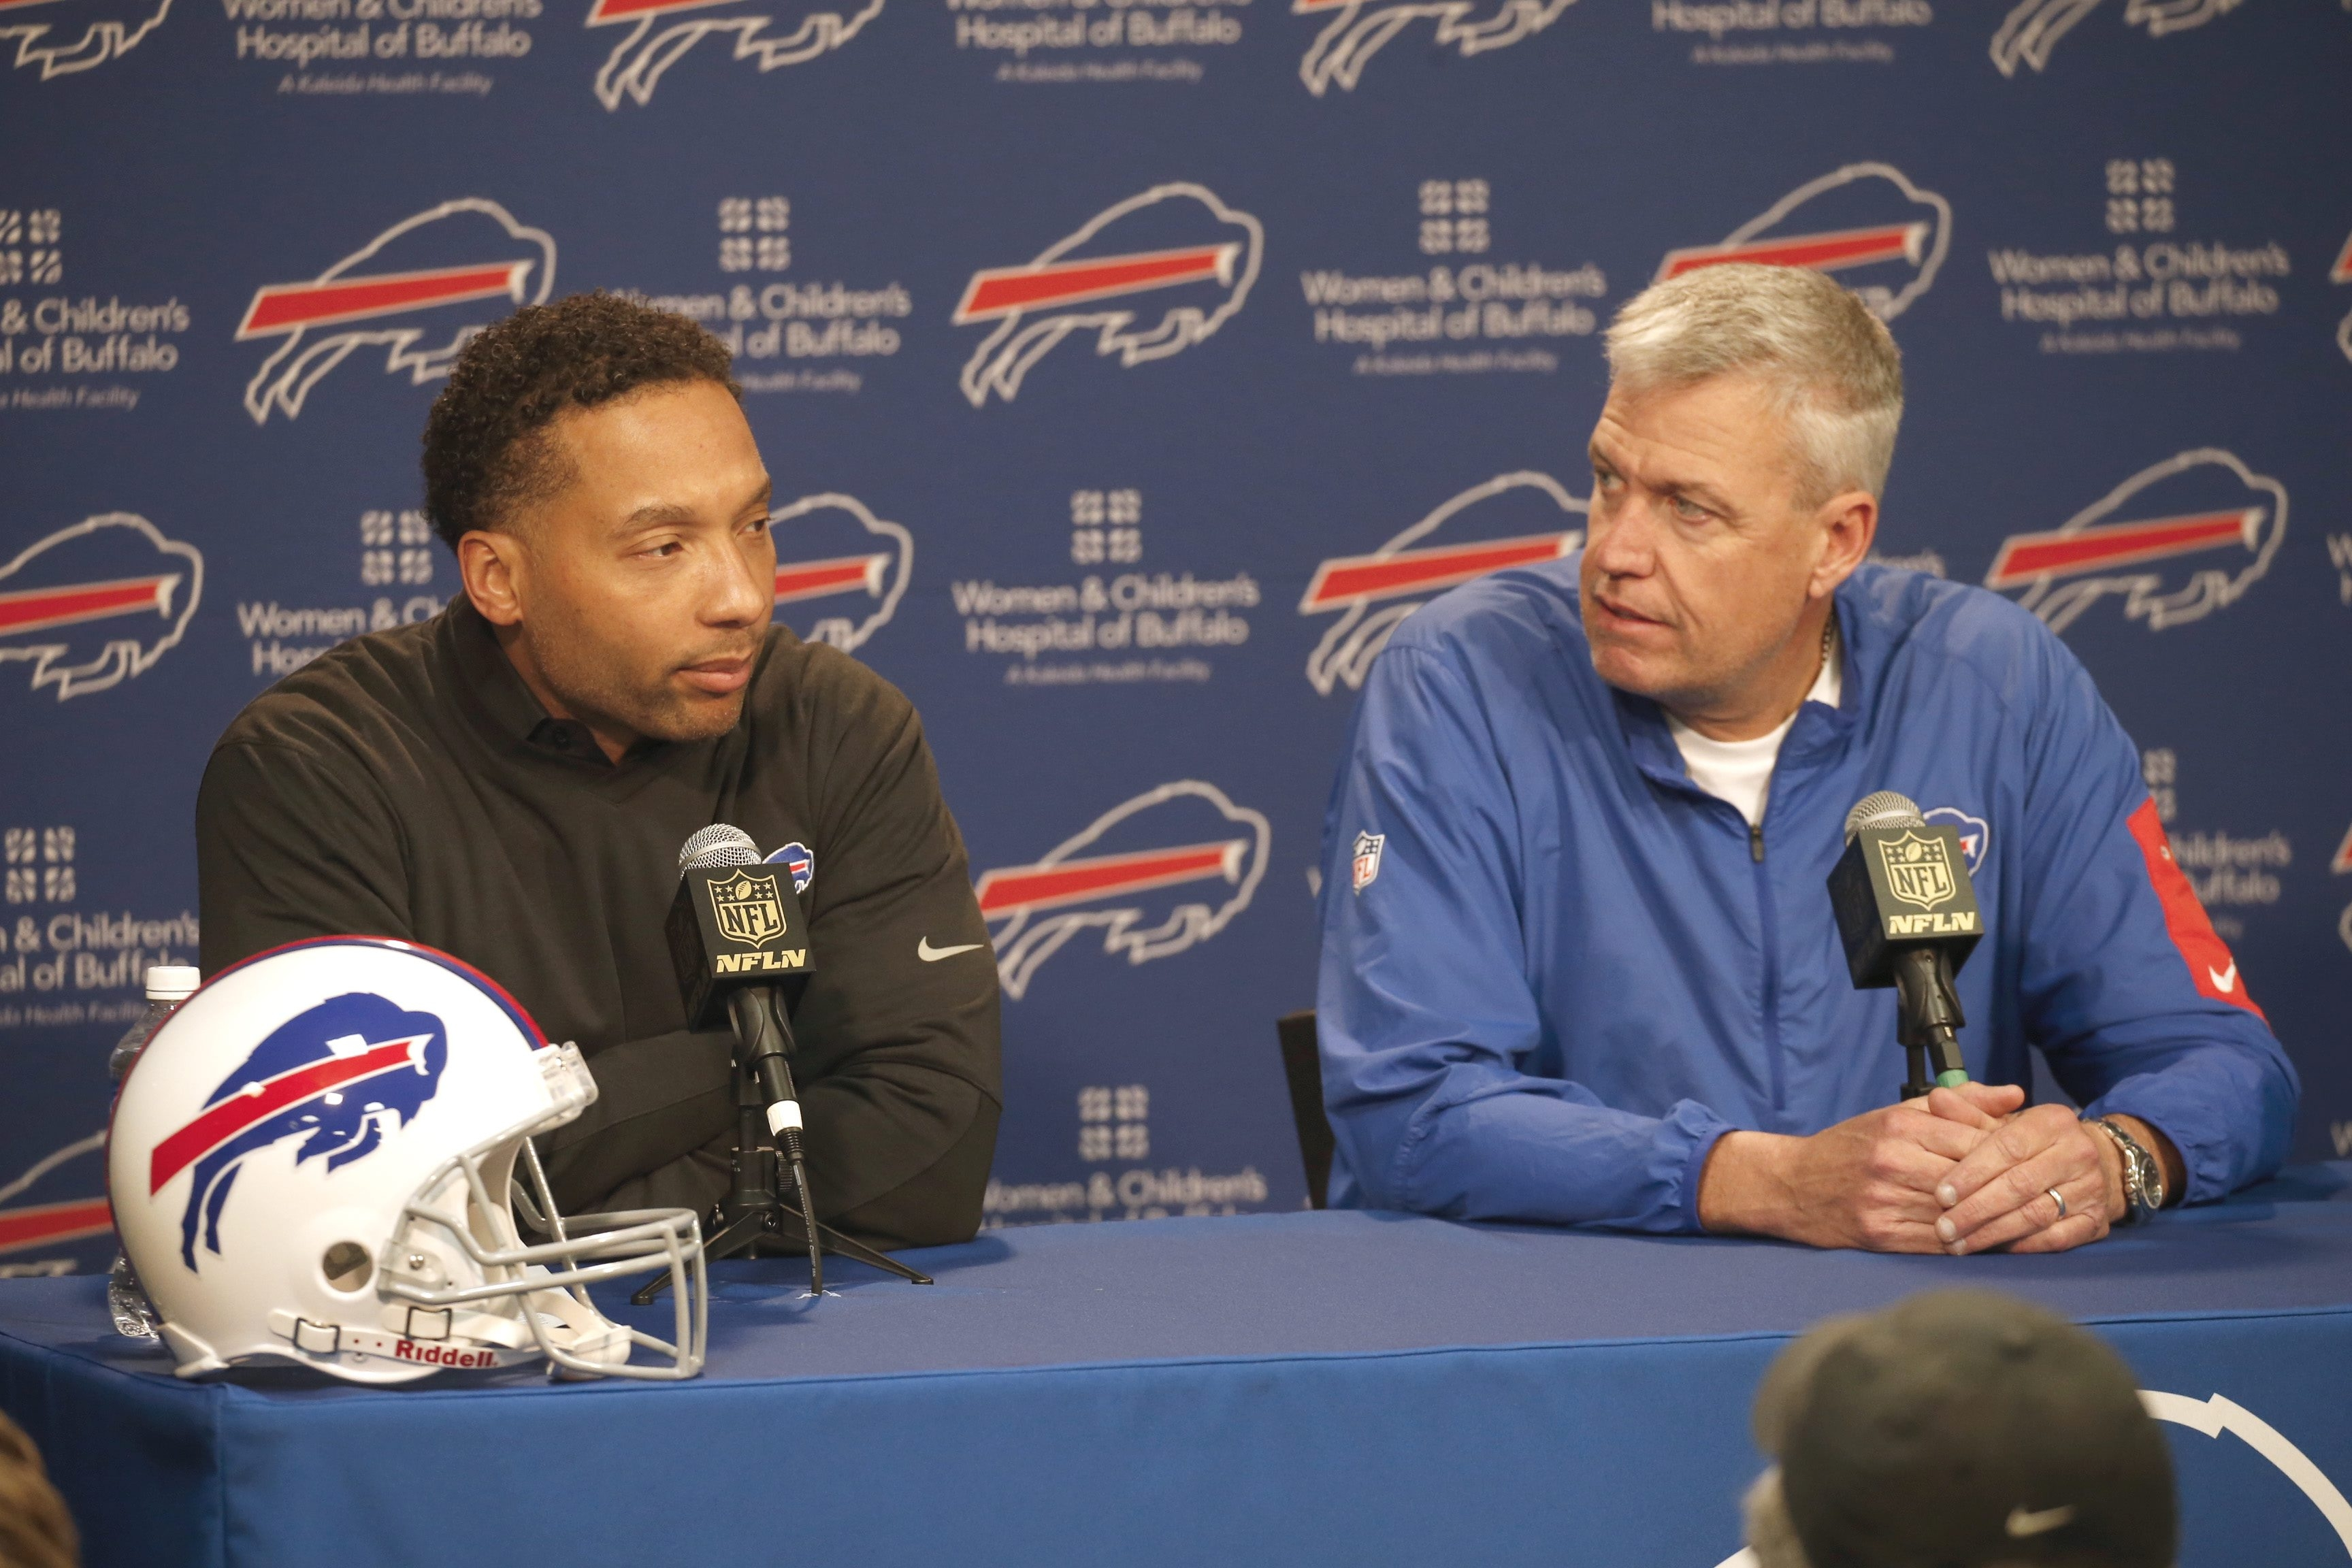 Regardless of the team's party line, Doug Whaley, left, and Coach Rex Ryan face an improve-or-else situation in 2016.